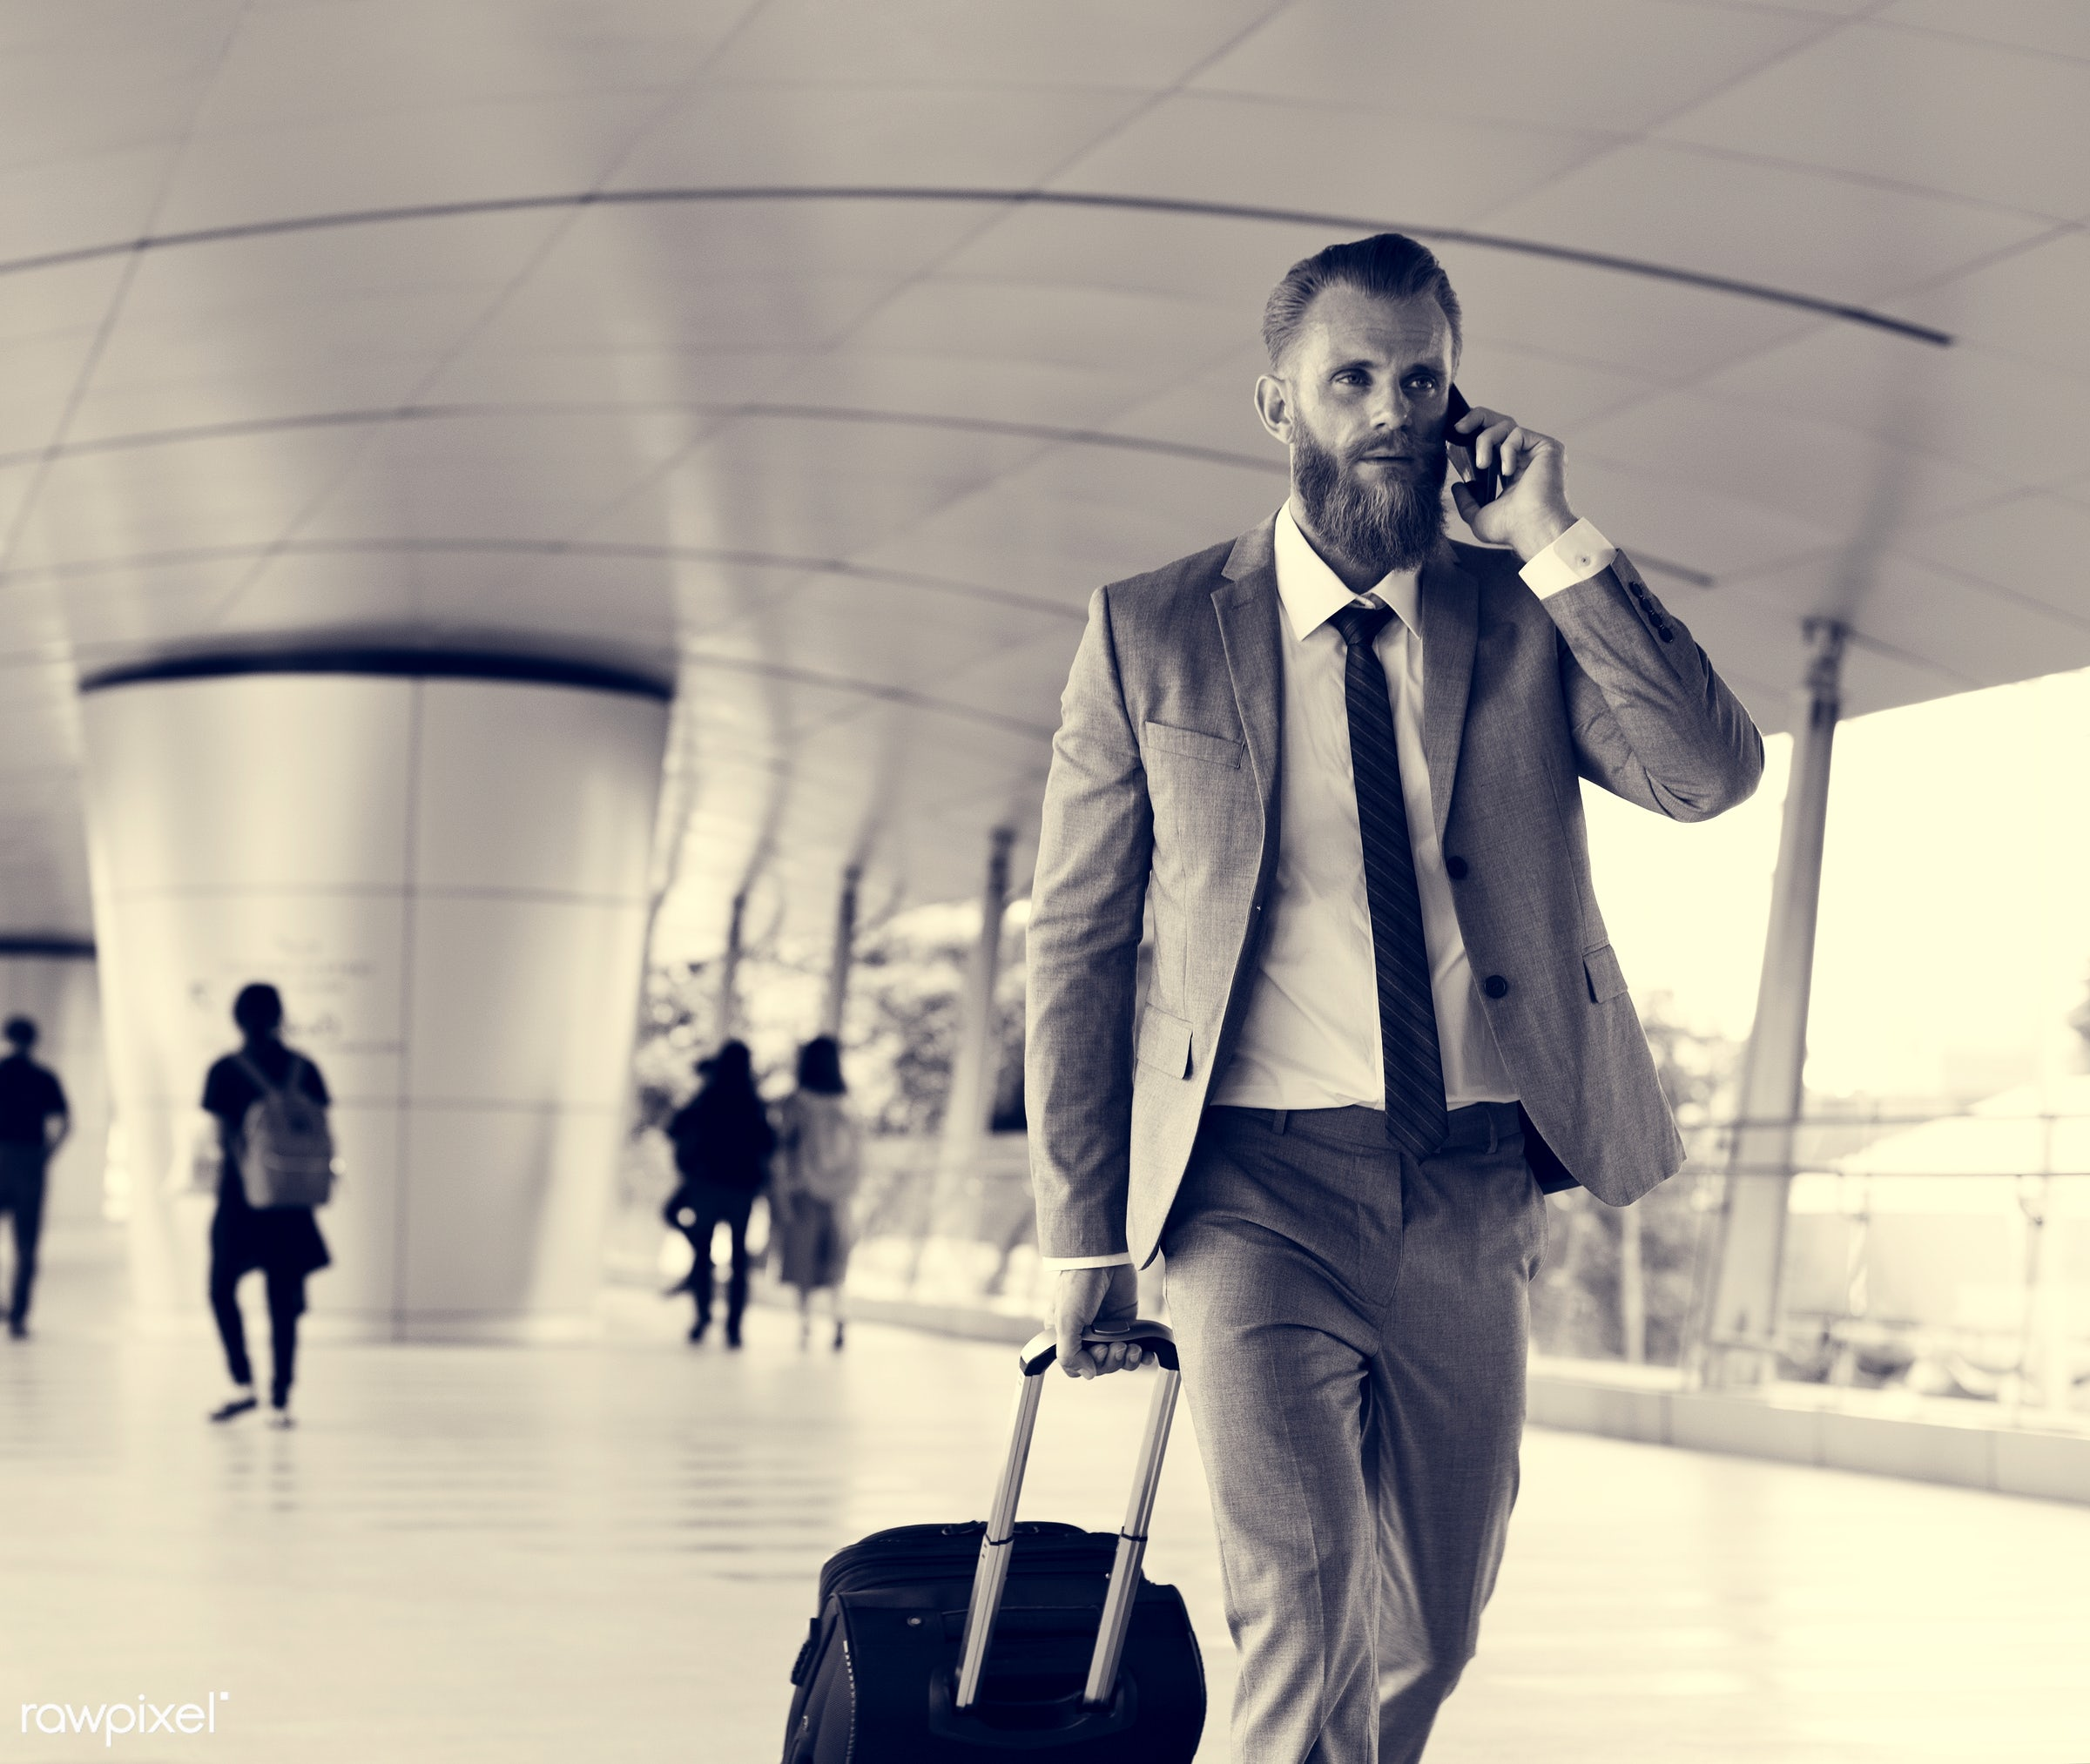 update, business trip, expression, call, face, phone, person, suit and tie, white collar worker, indoors, busy, luggage,...